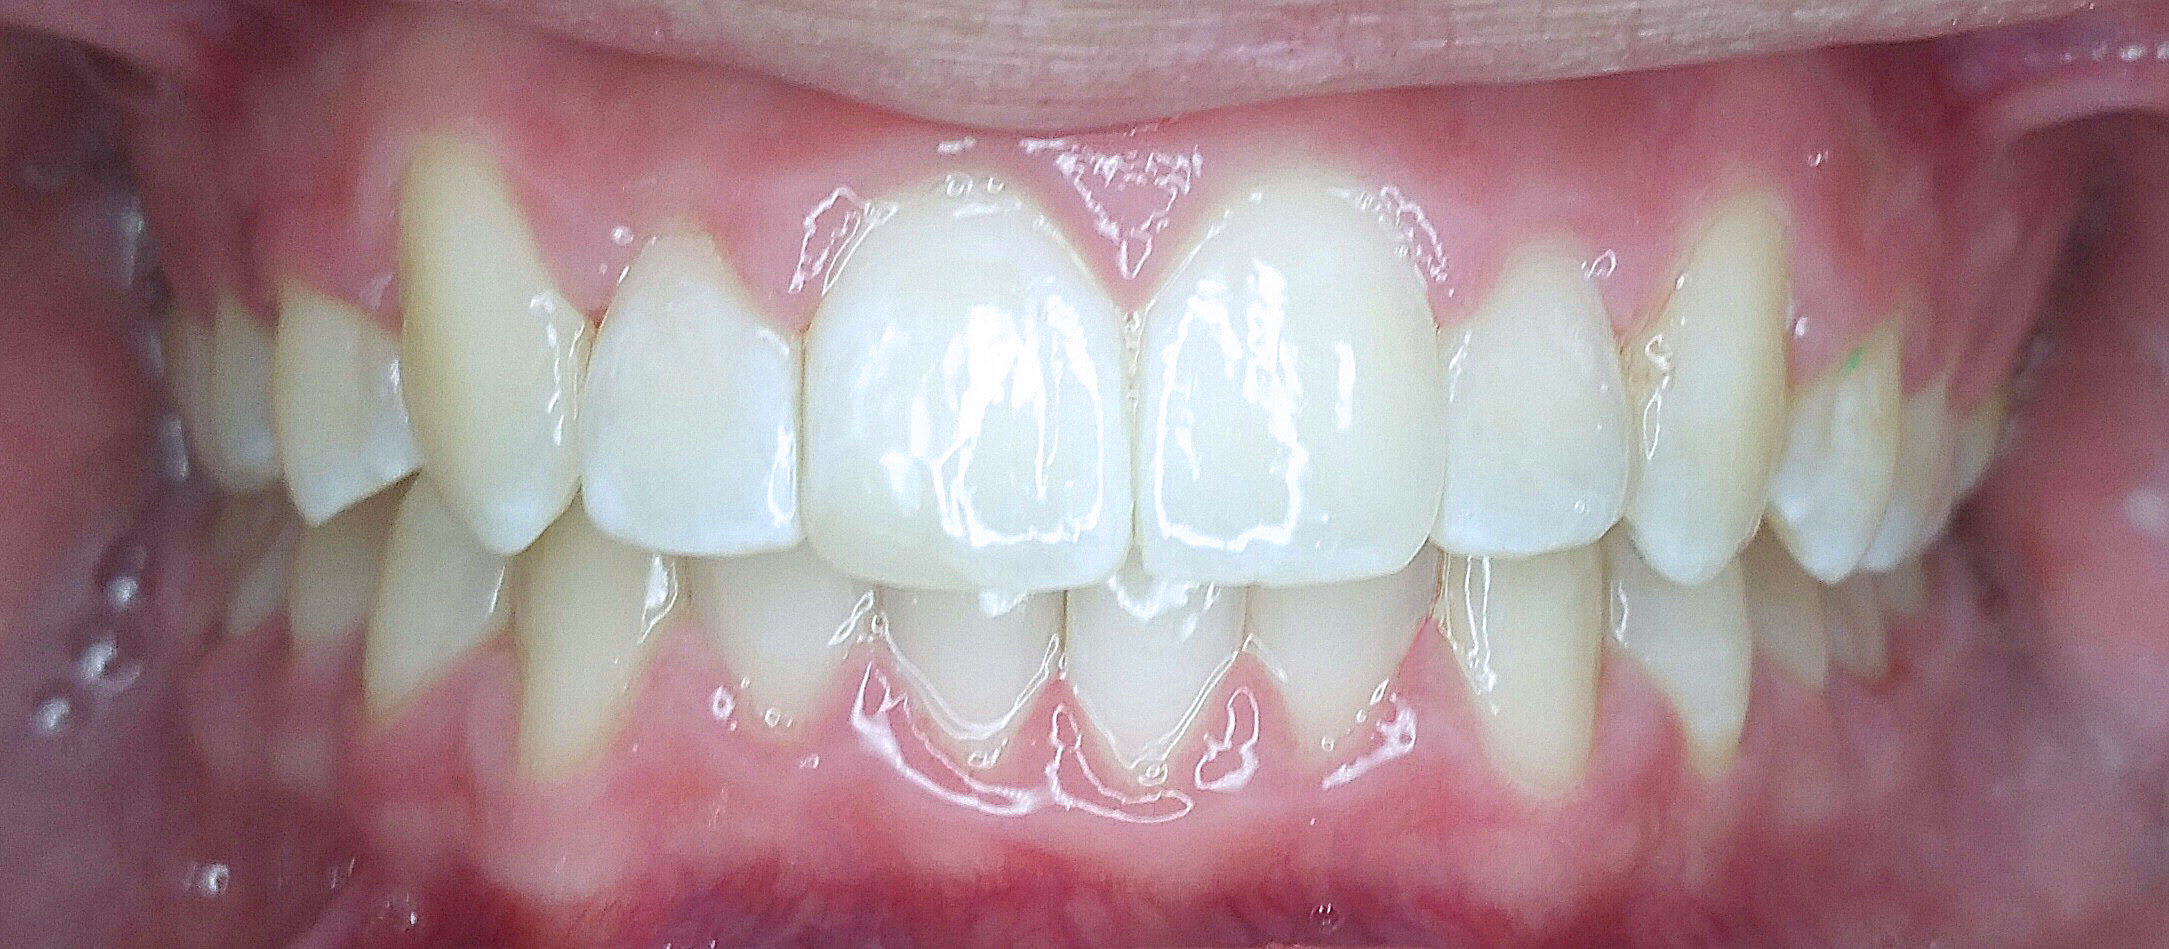 PowerProx 6-month Braces Case 1 after